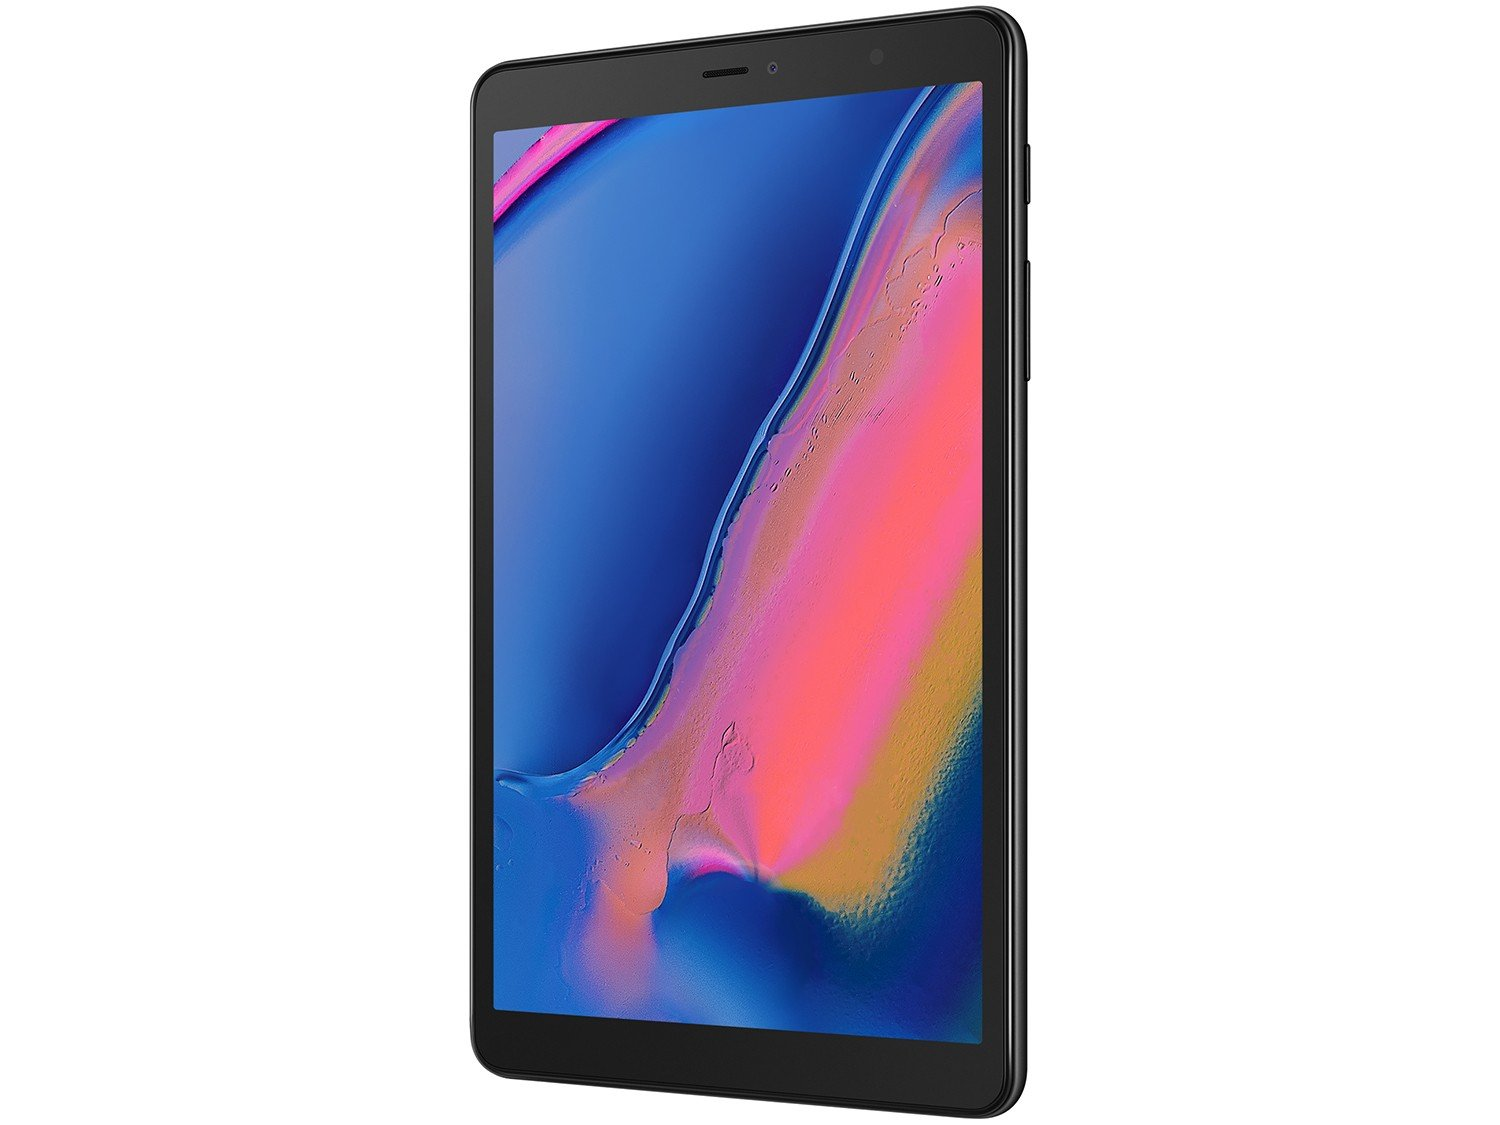 Foto 2 - Tablet Samsung Galaxy TAB A S Pen com Caneta - 32GB 8 4G Wi-Fi Android 9.1 Octa Core Câm. 8MP